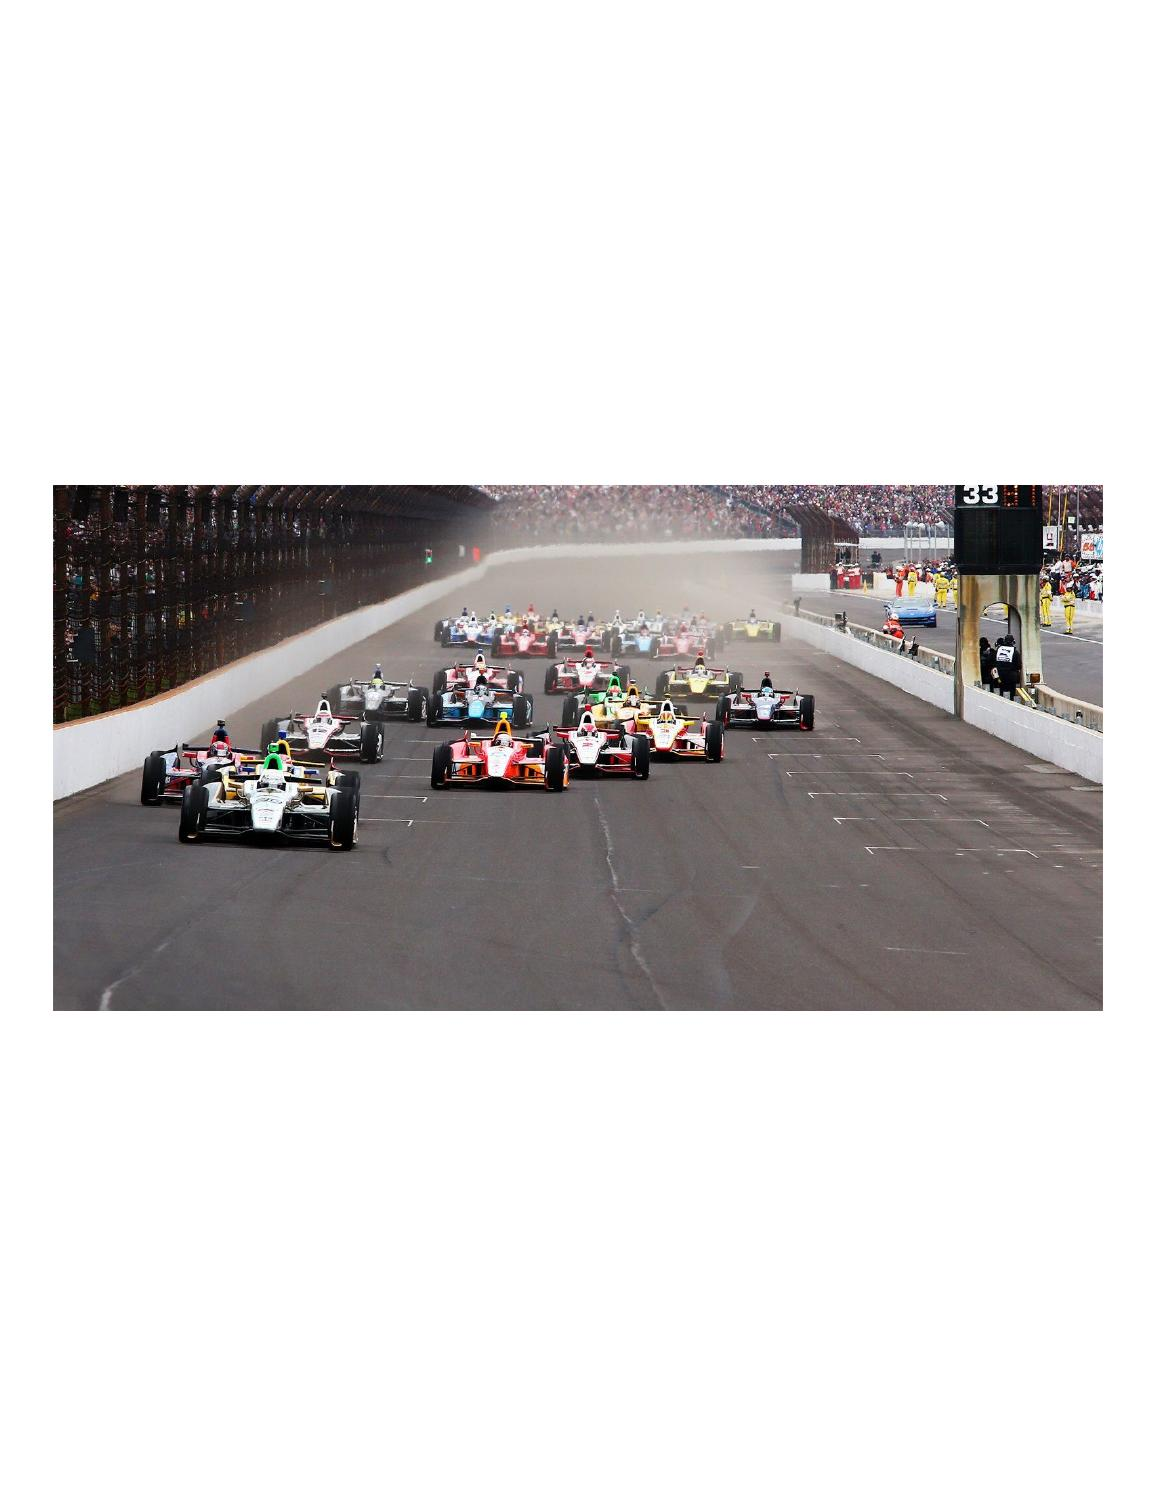 Indy 500 Live Streaming 2015 by indy500livestreaming2015 - issuu